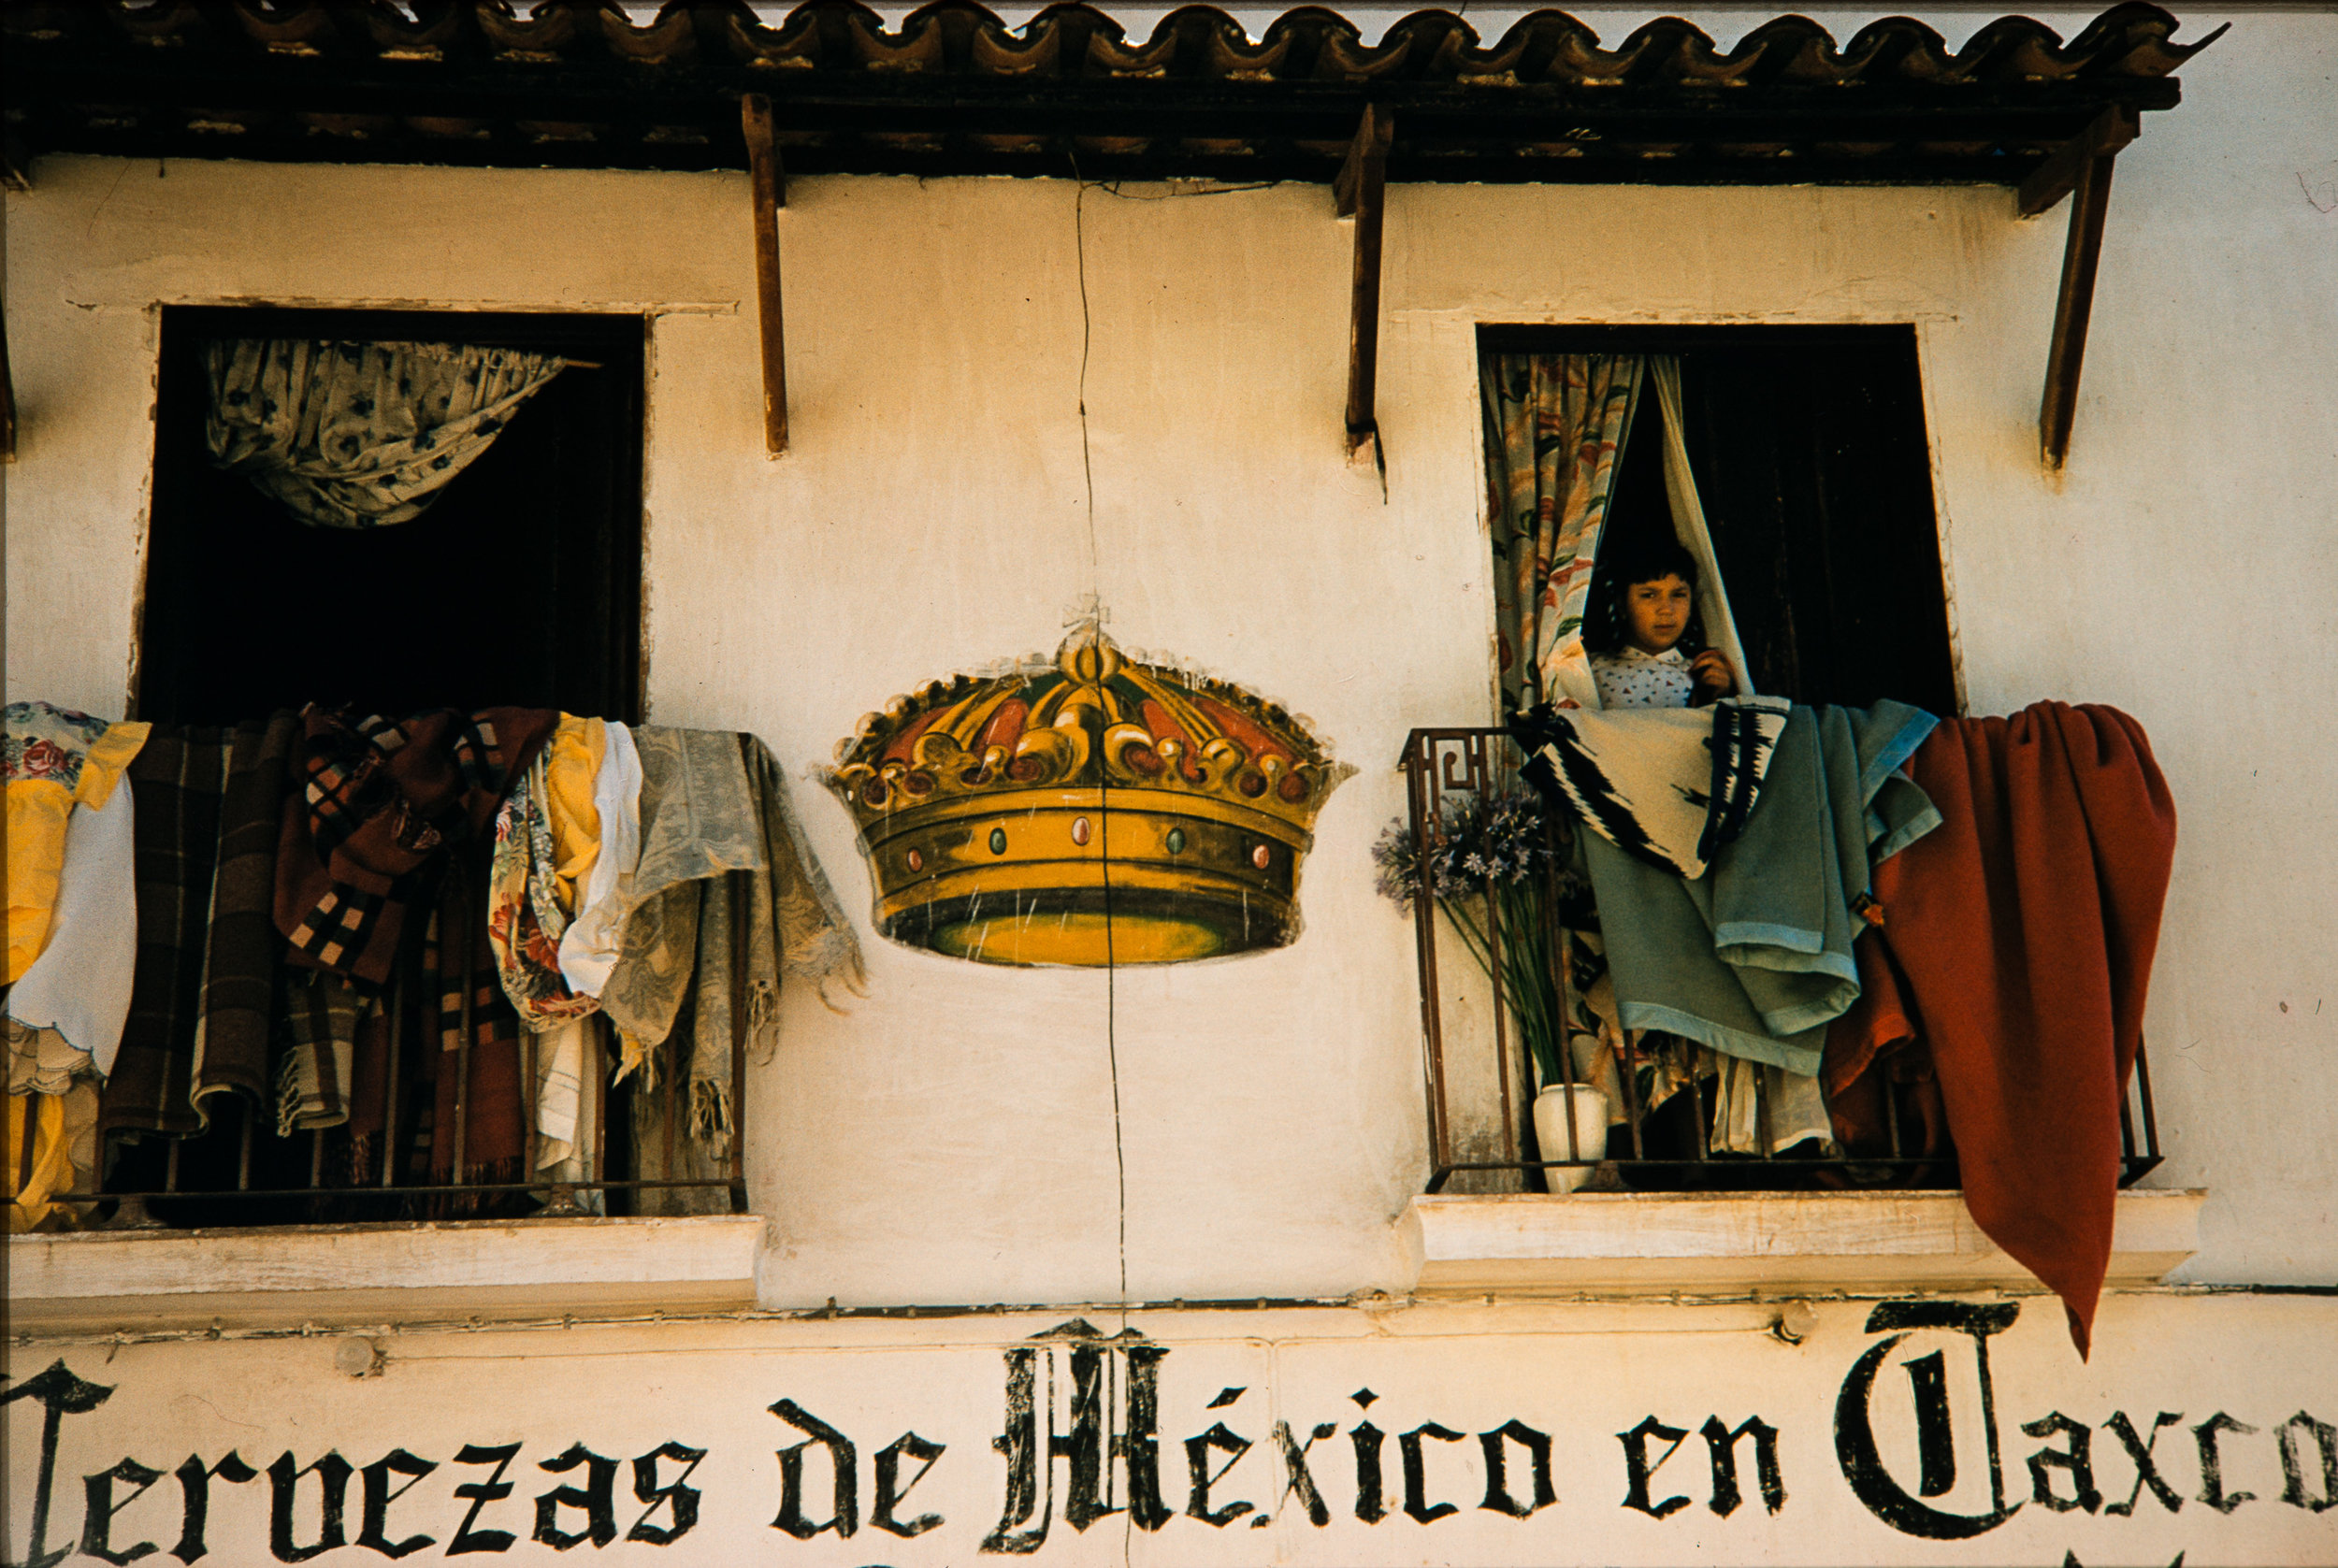 Crown between two windows, Mexico, 1957